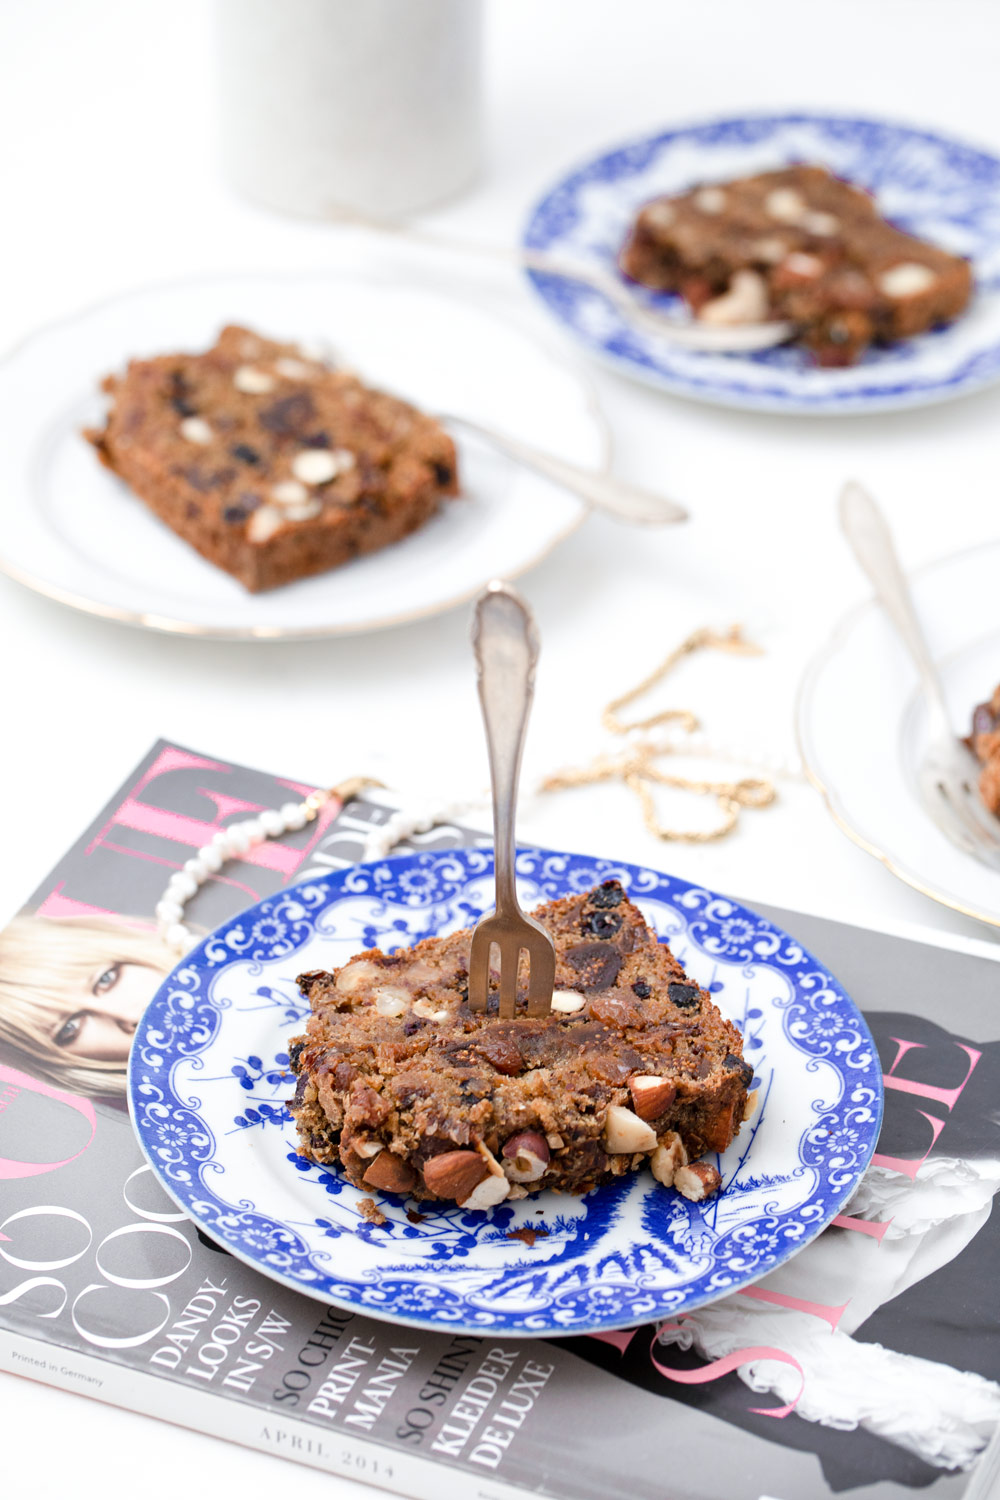 Healthy cake with nuts and seeds by Karolin Baitinger